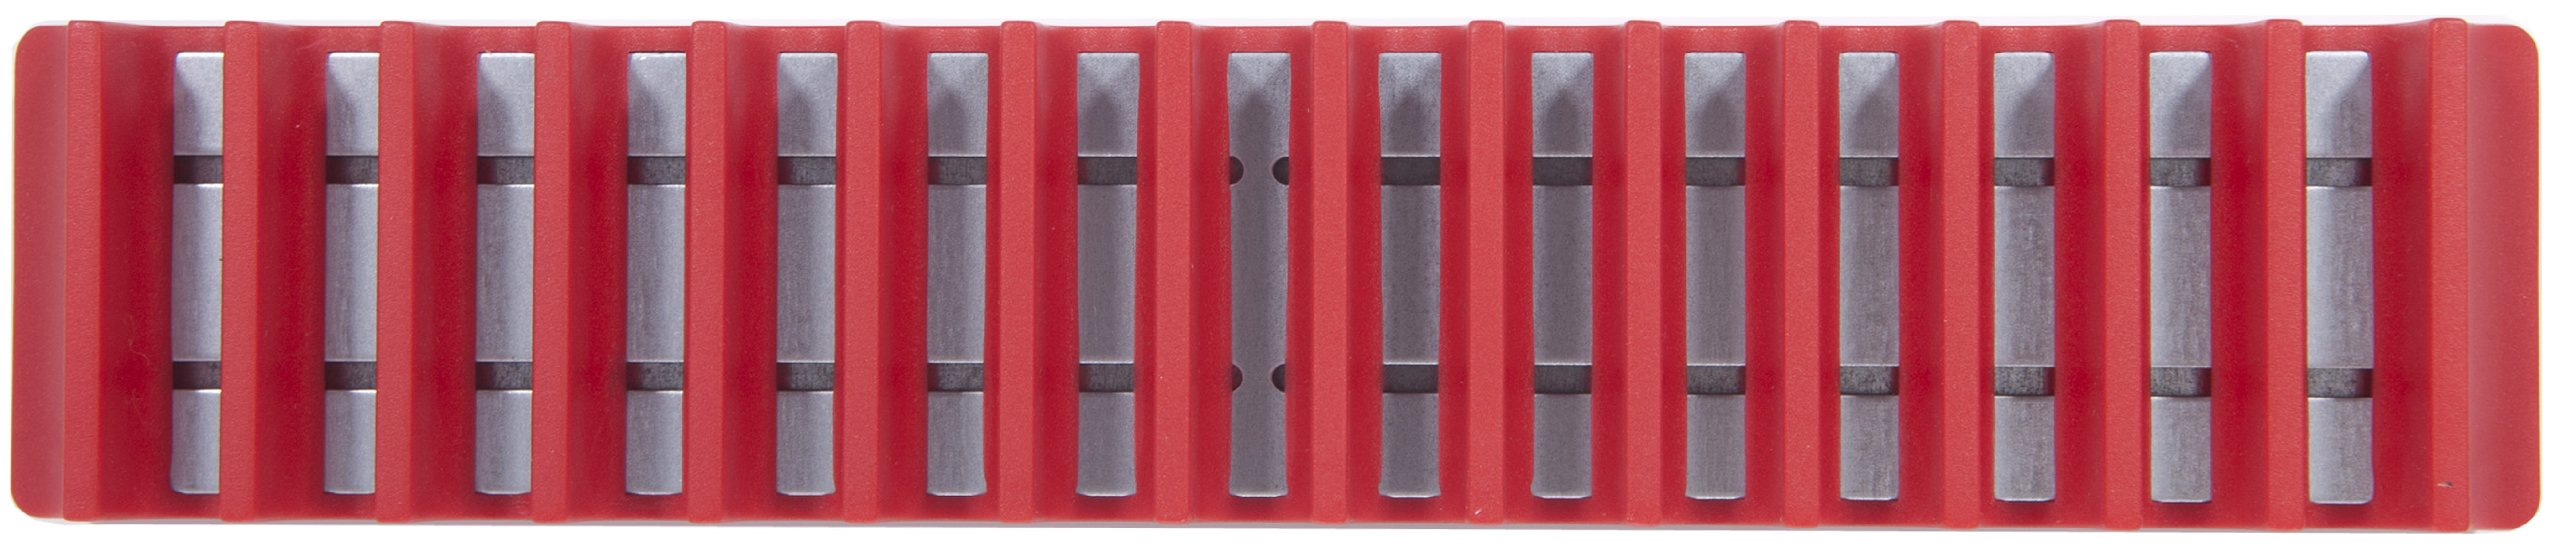 Torin Big Red Tool Organizer: Magnetic Screwdriver Rack